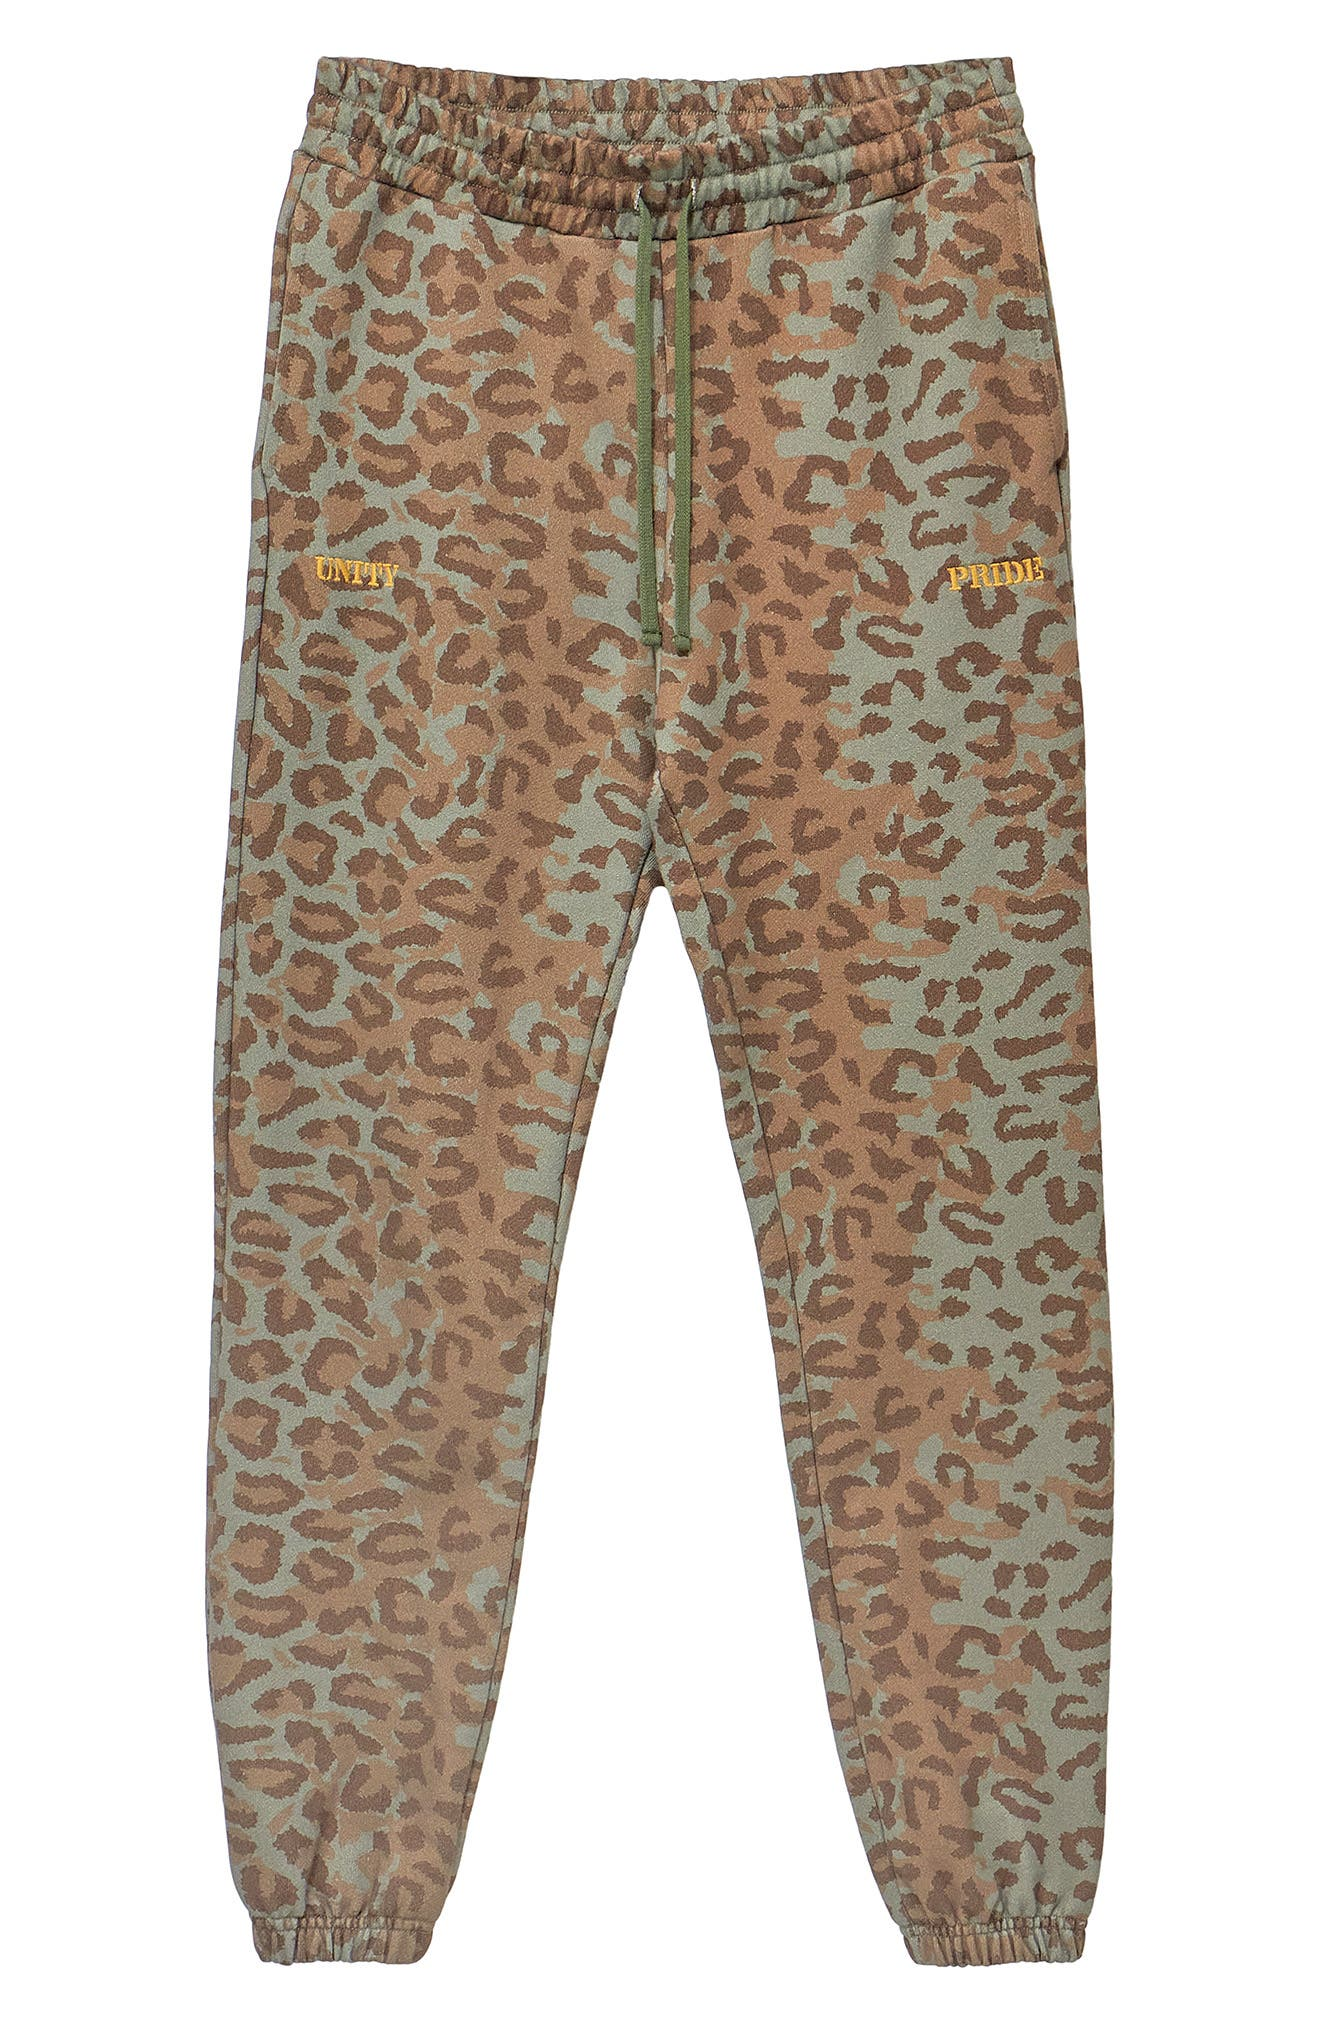 Men's Hstry By Nas X Coming 2 America Unity & Pride Leopard French Terry Sweatpants